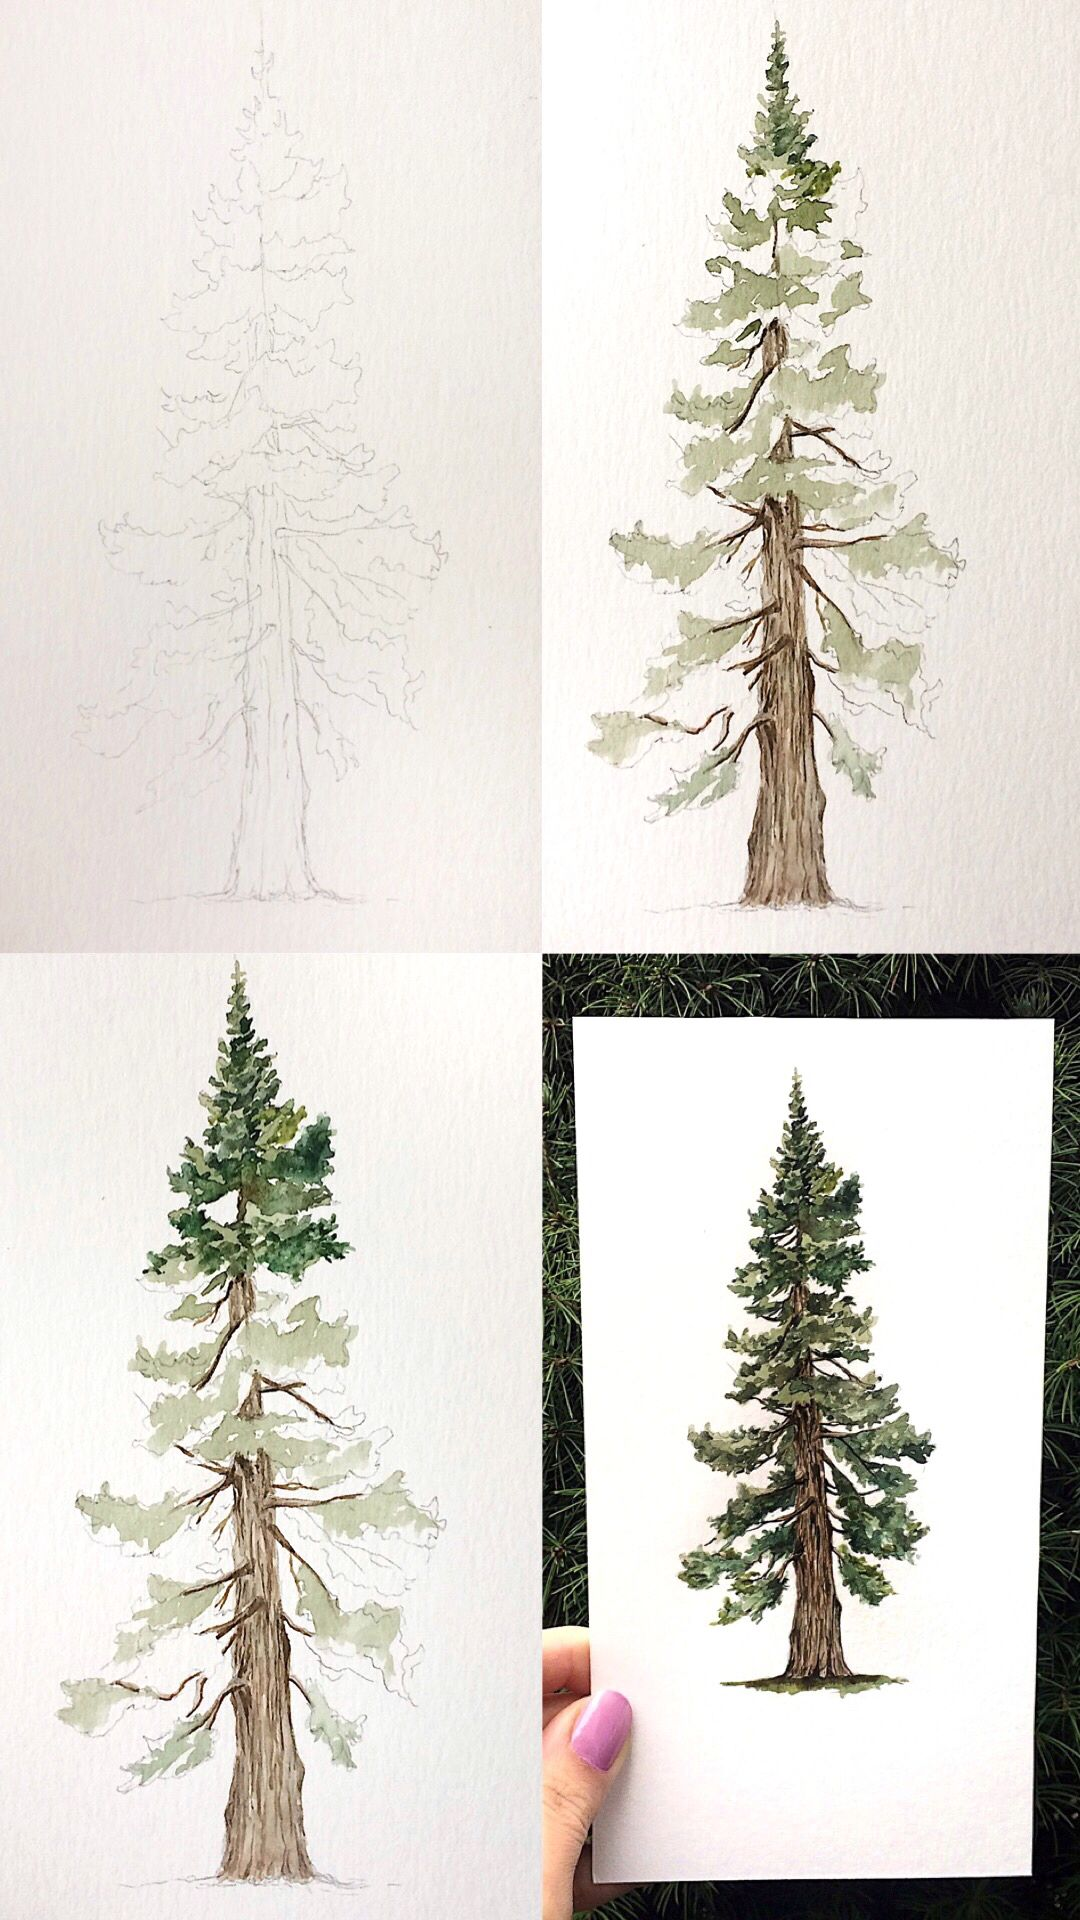 Mini Tutorial Of A Pine Tree With Step By Step Process Photos